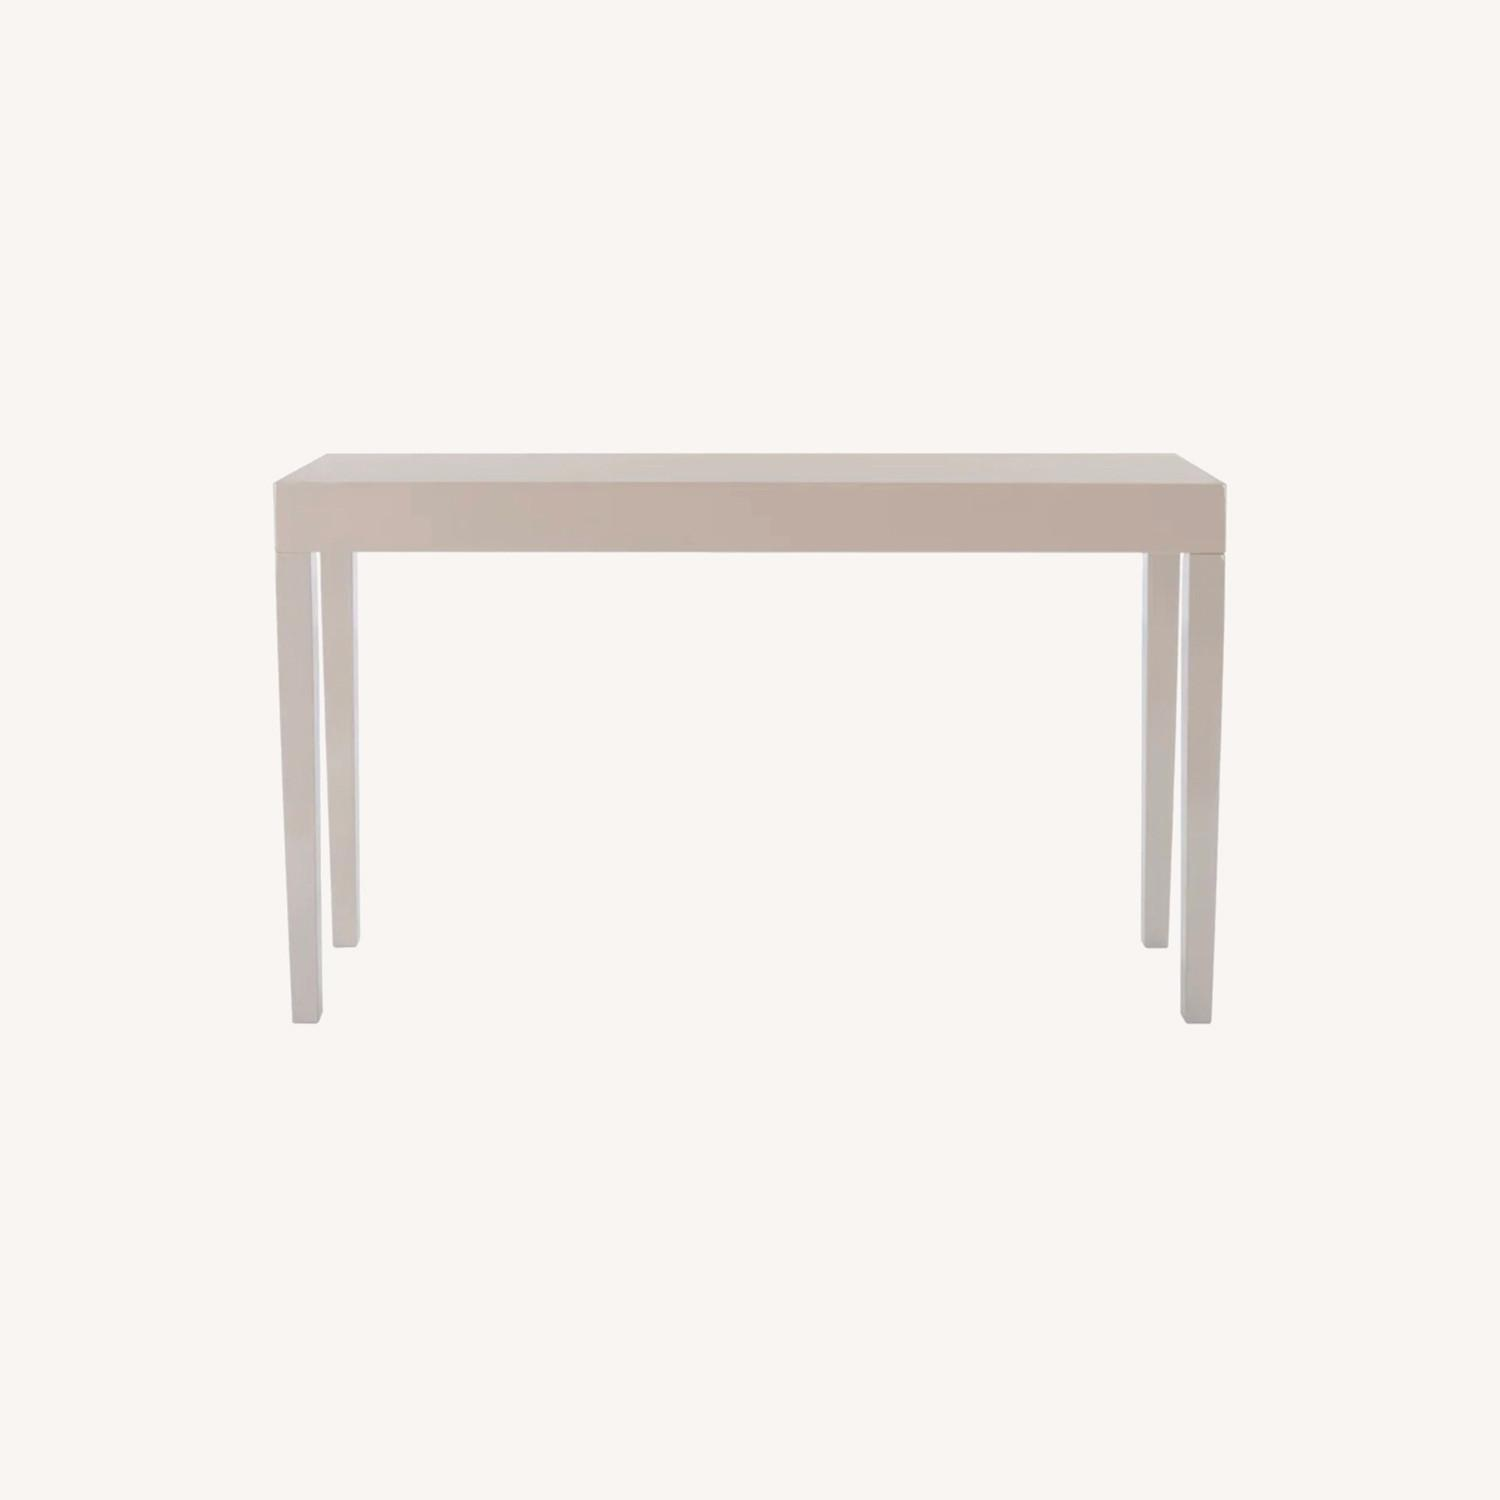 Wayfair Modern Taupe Console/Entry Table - image-0